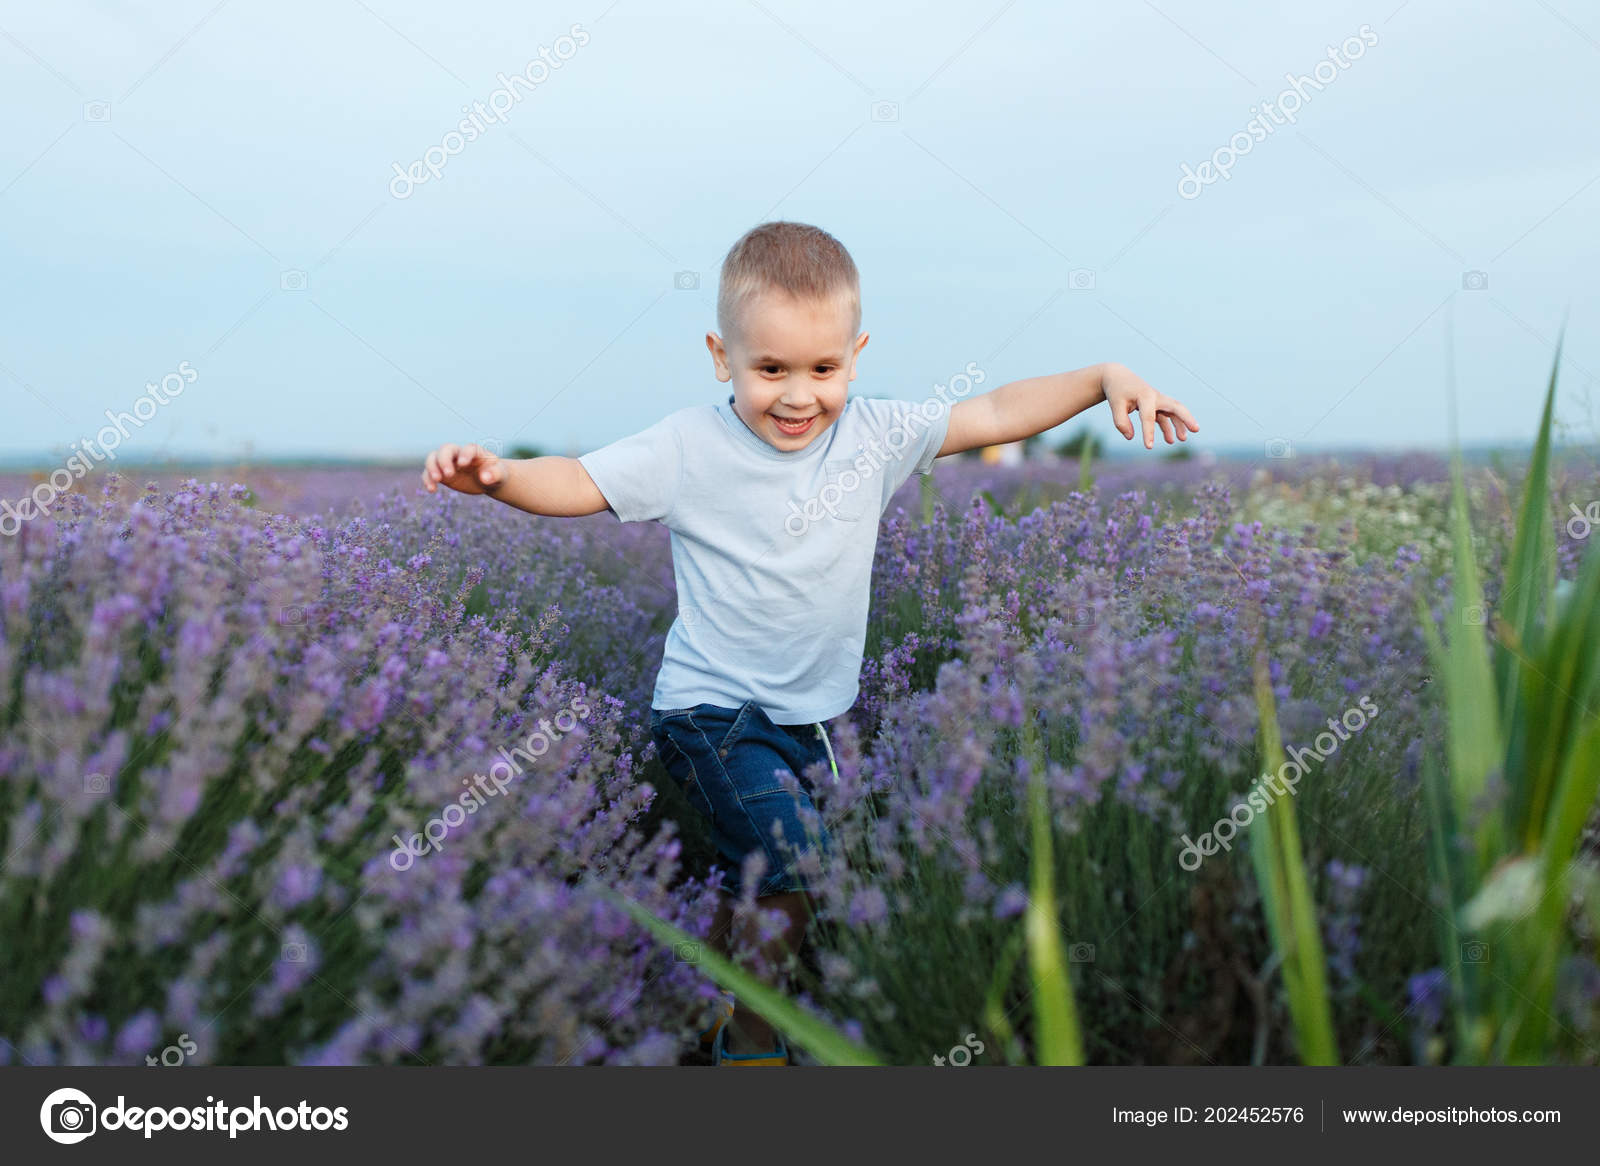 b623cf2d0 Playful little cute child baby boy walk on purple lavender flower meadow  field background, run, have fun, play, enjoy. Joyful small kid son.